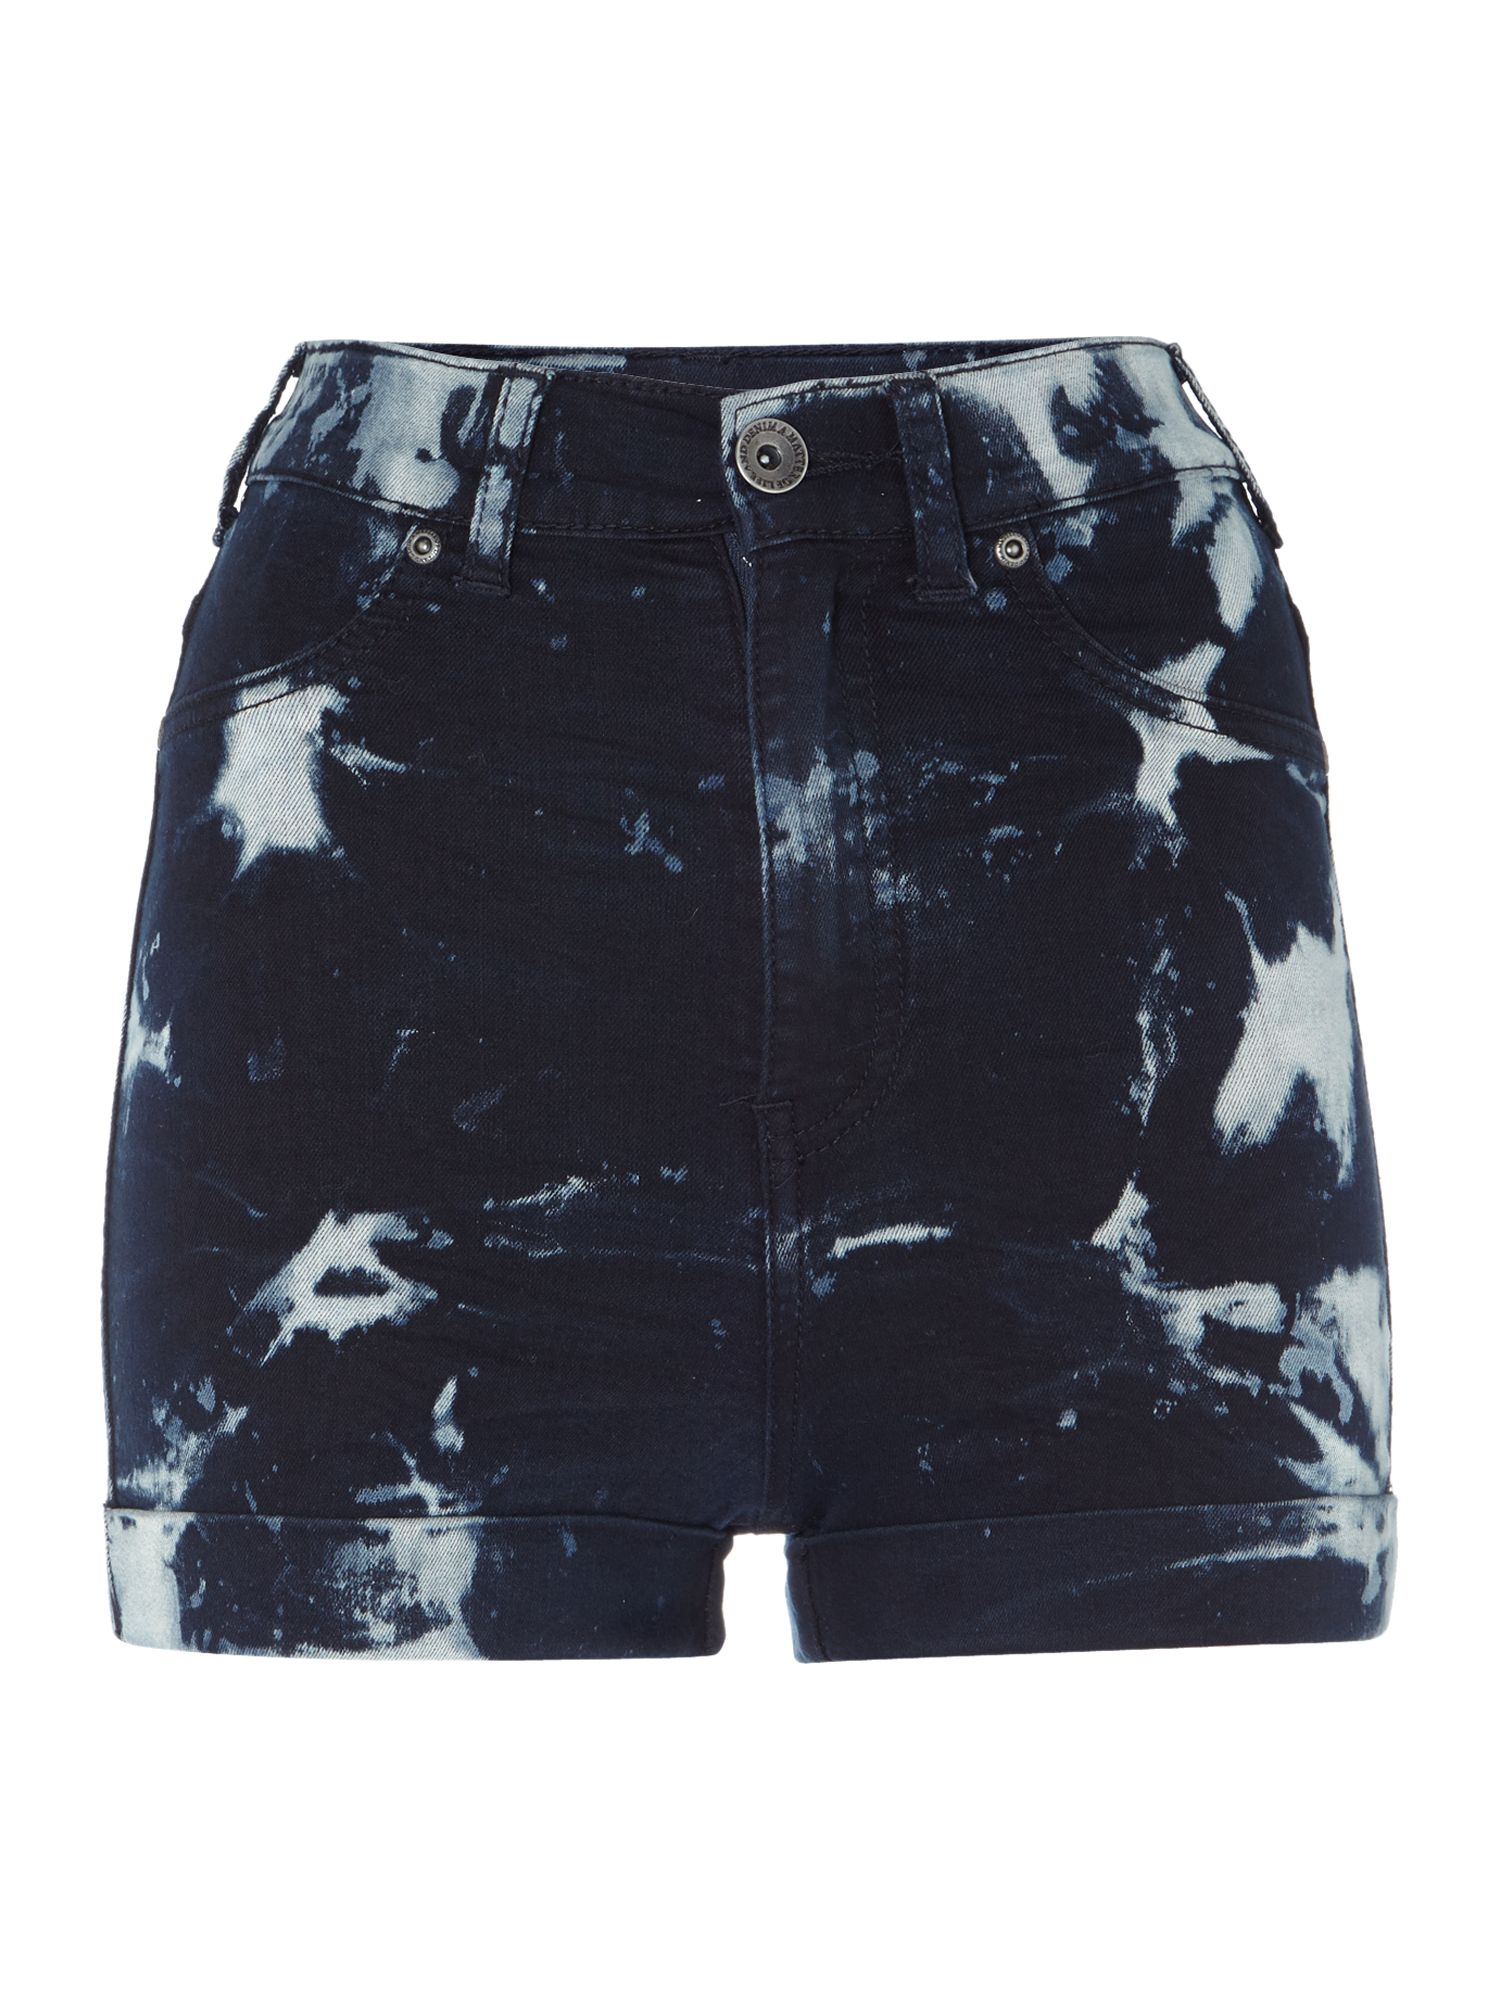 Galore high waist shorts in Dry Blue